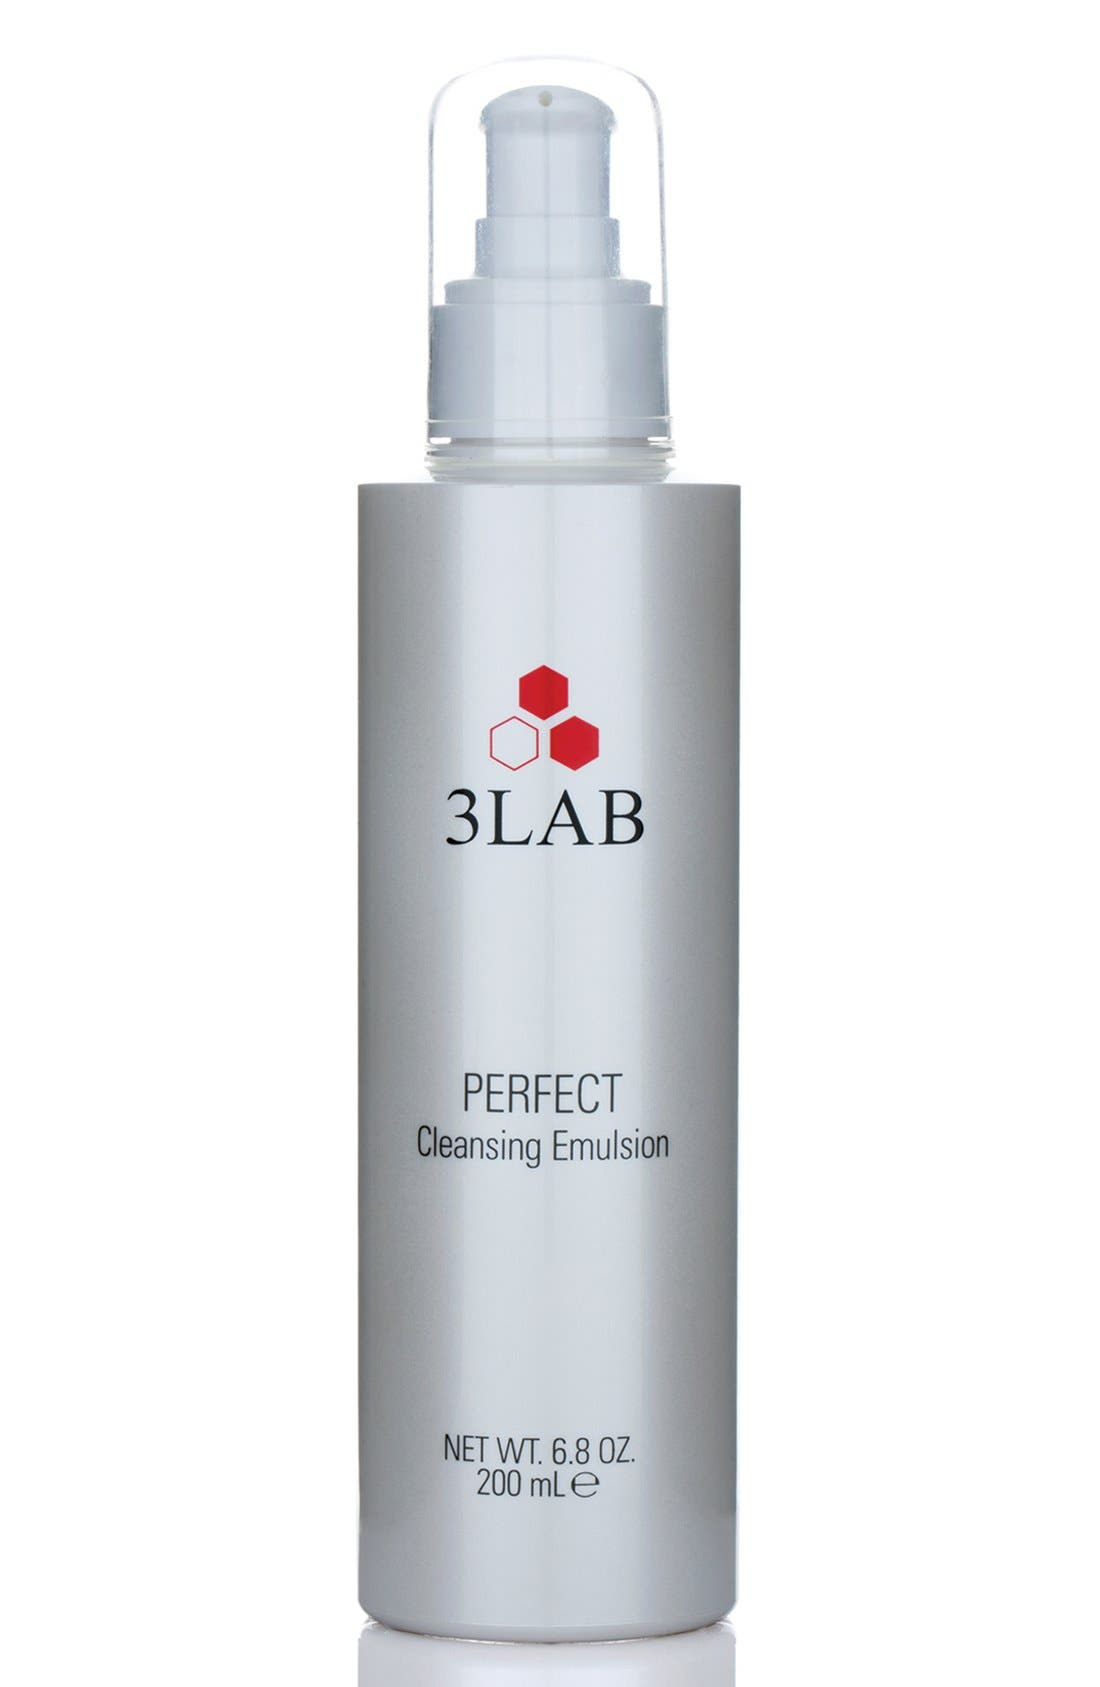 3LAB Perfect Cleansing Emulsion